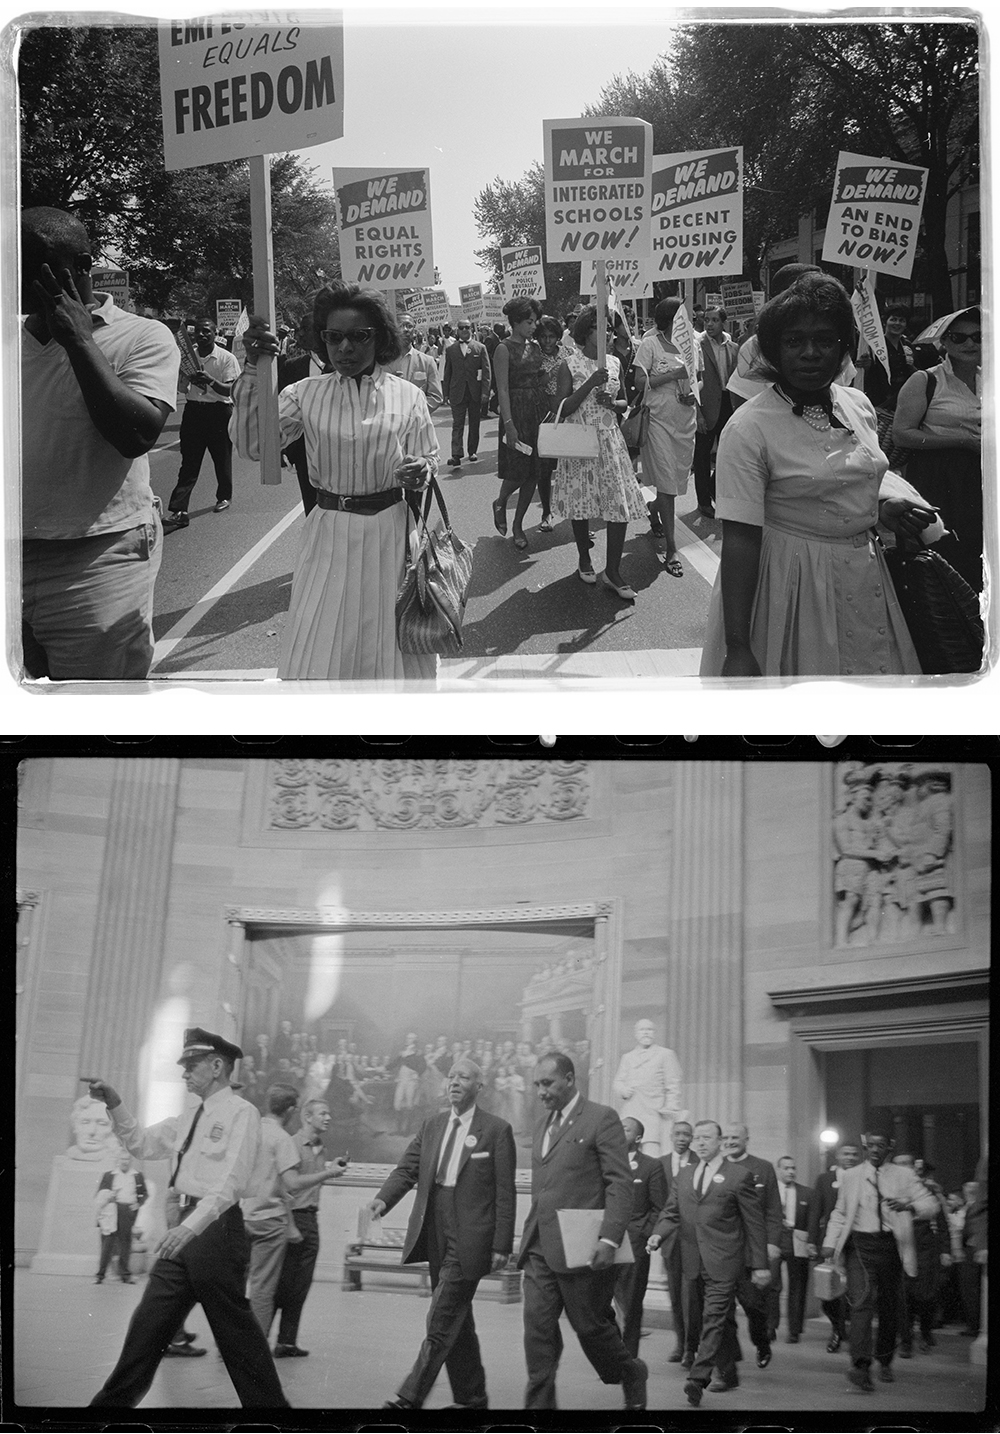 Top: March on Washington, 1963. Photograph by Warren K. Leffler. Bottom: A. Philip Randolph and other civil rights leaders on their way to Congress during the March on Washington, 1963. Photograph by Marion S. Trikosko.